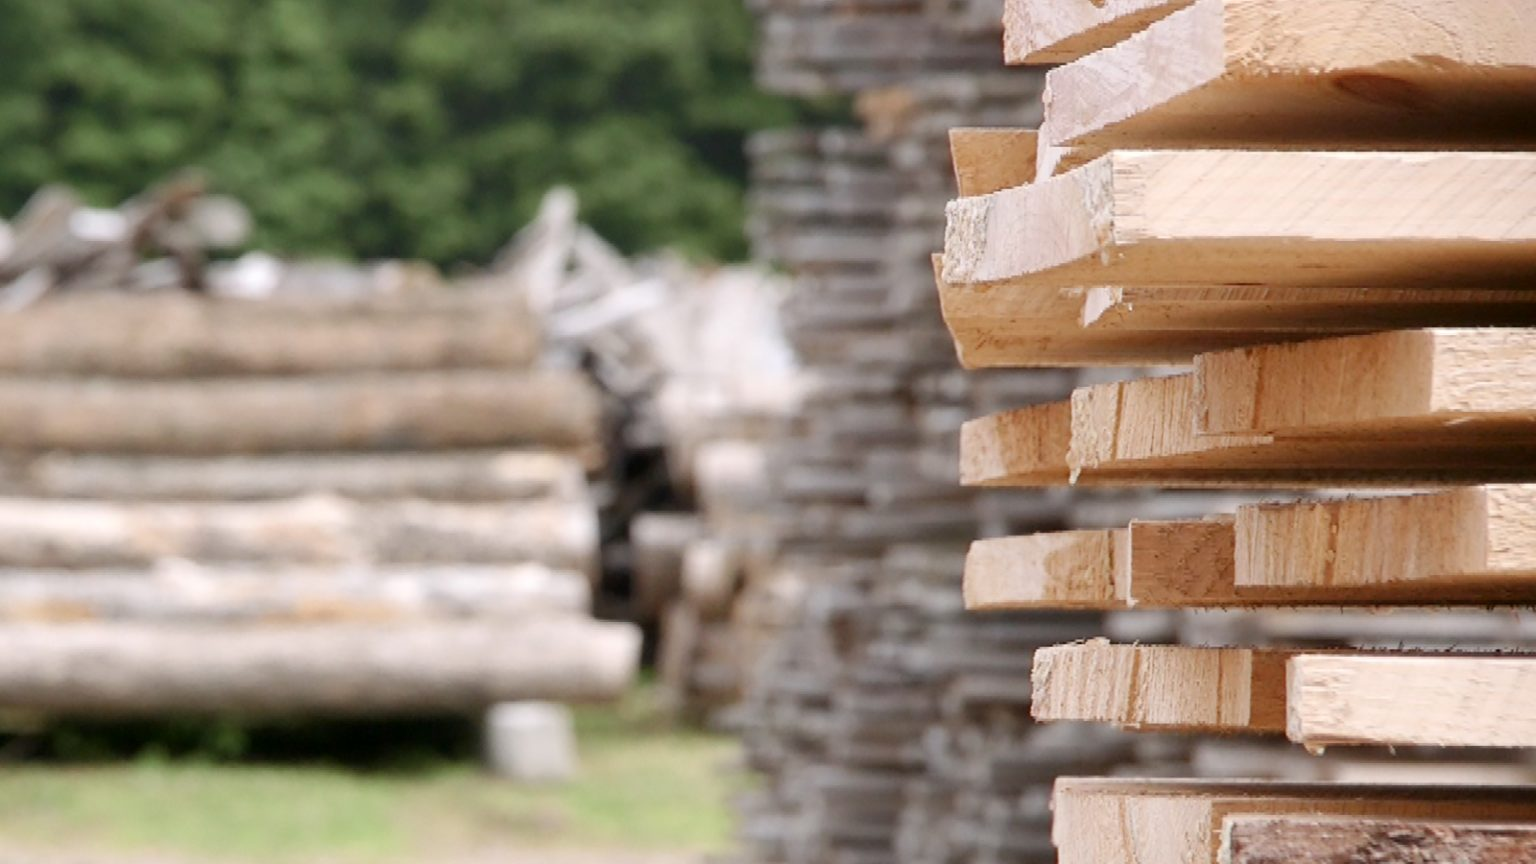 Stack of lumber in focus in foreground with stacks of lumber and timber in blurred background